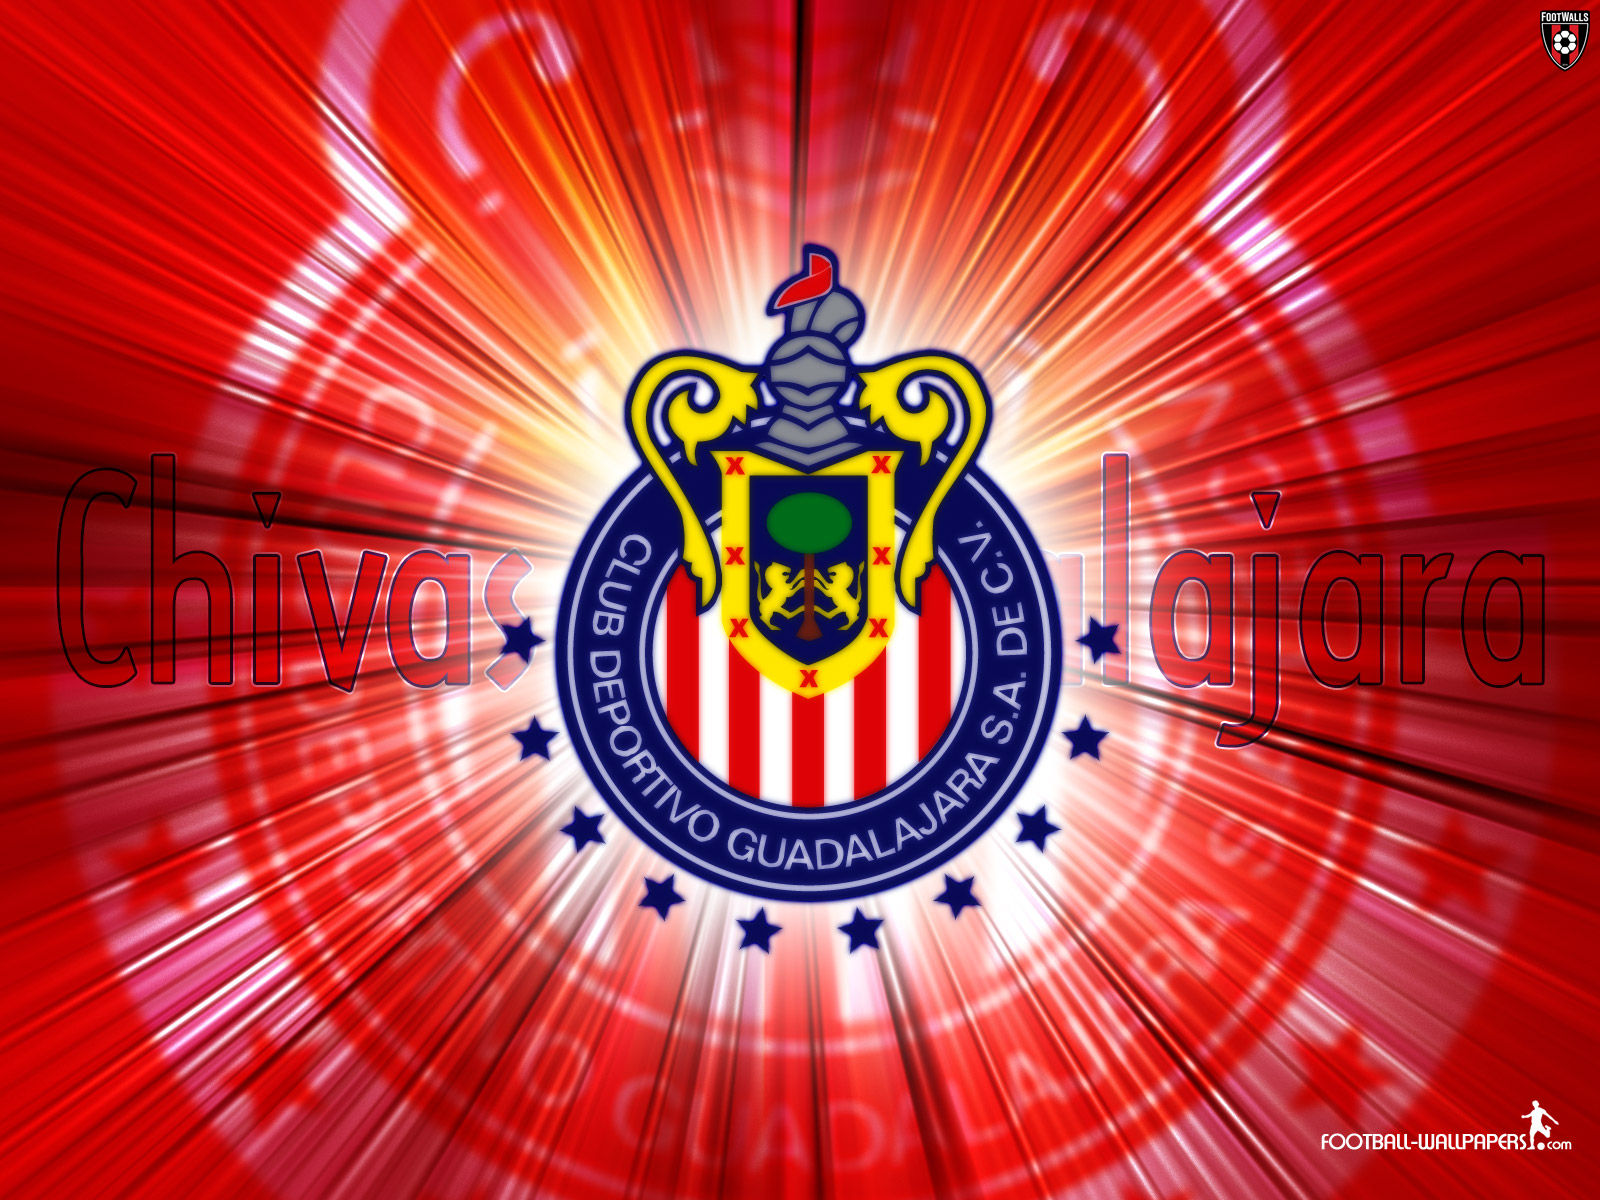 Chivas guadalajara wallpaper 5 football wallpapers chivas guadalajara wallpaper voltagebd Images